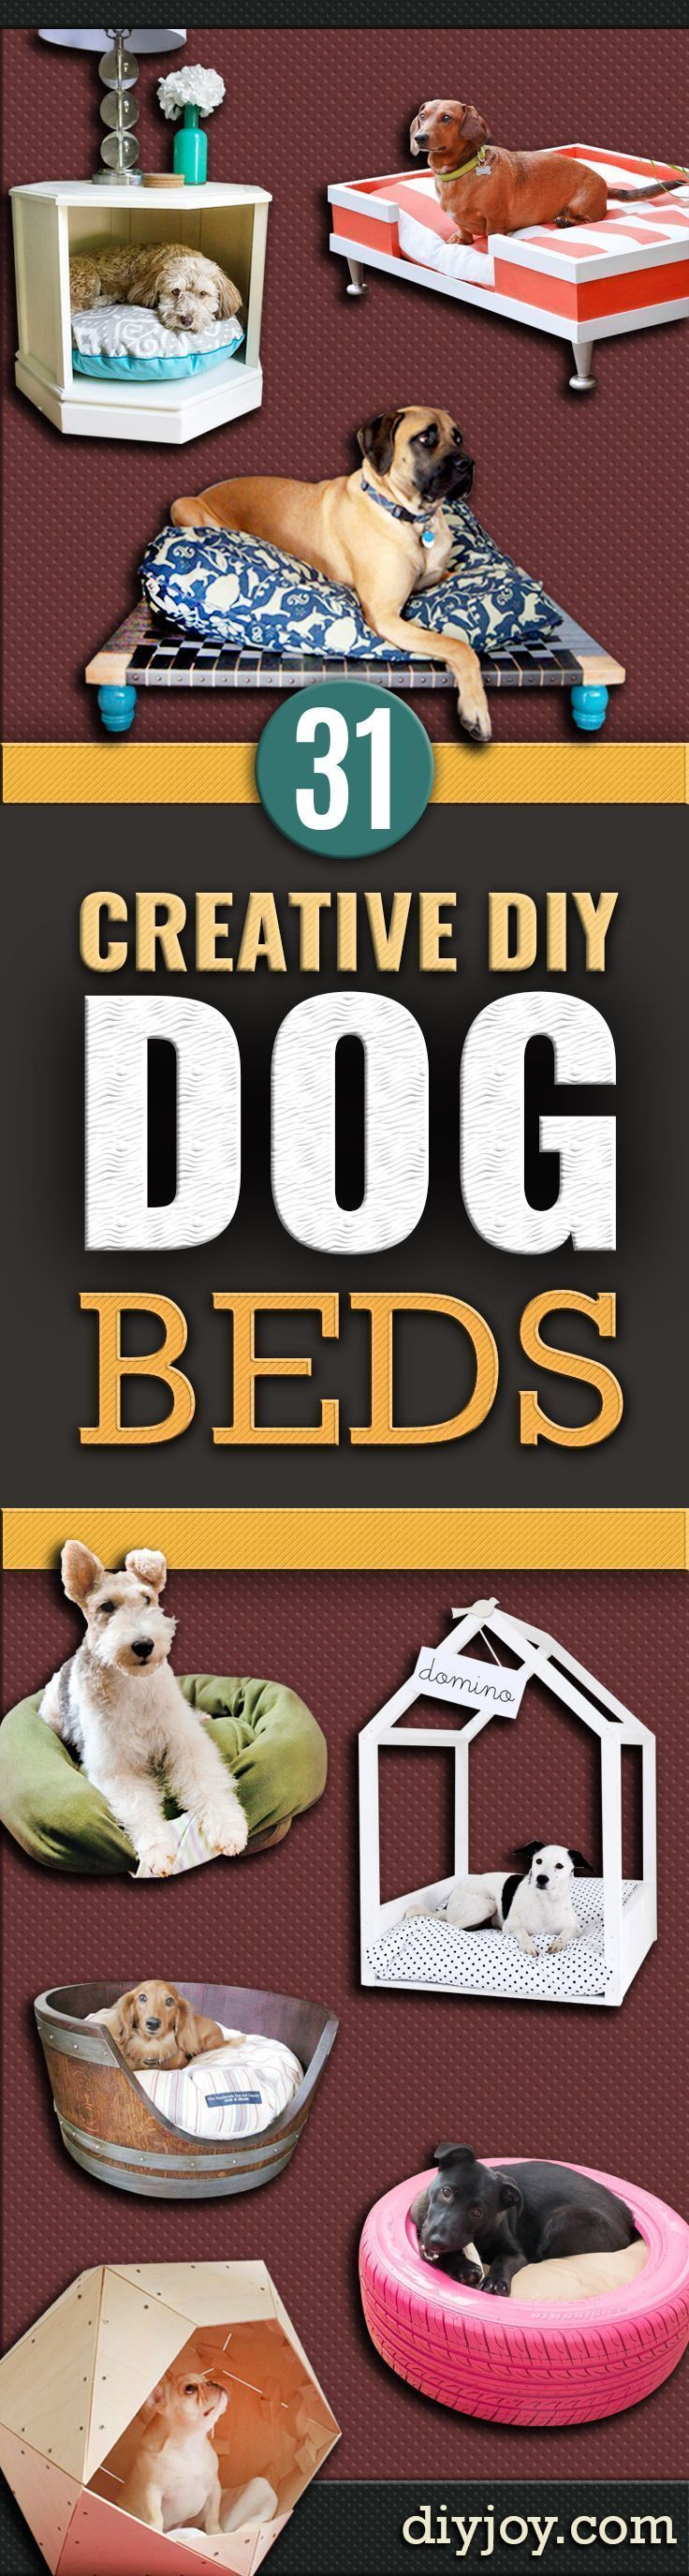 DIY Dog Beds - Projects and Ideas for Large, Medium and Small Dogs. Cute and Easy No Sew Crafts for Your Pets. Pallet, Crate, PVC and End Table Dog Bed Tutorials http://diyjoy.com/diy-dog-beds #dogawesomeideas